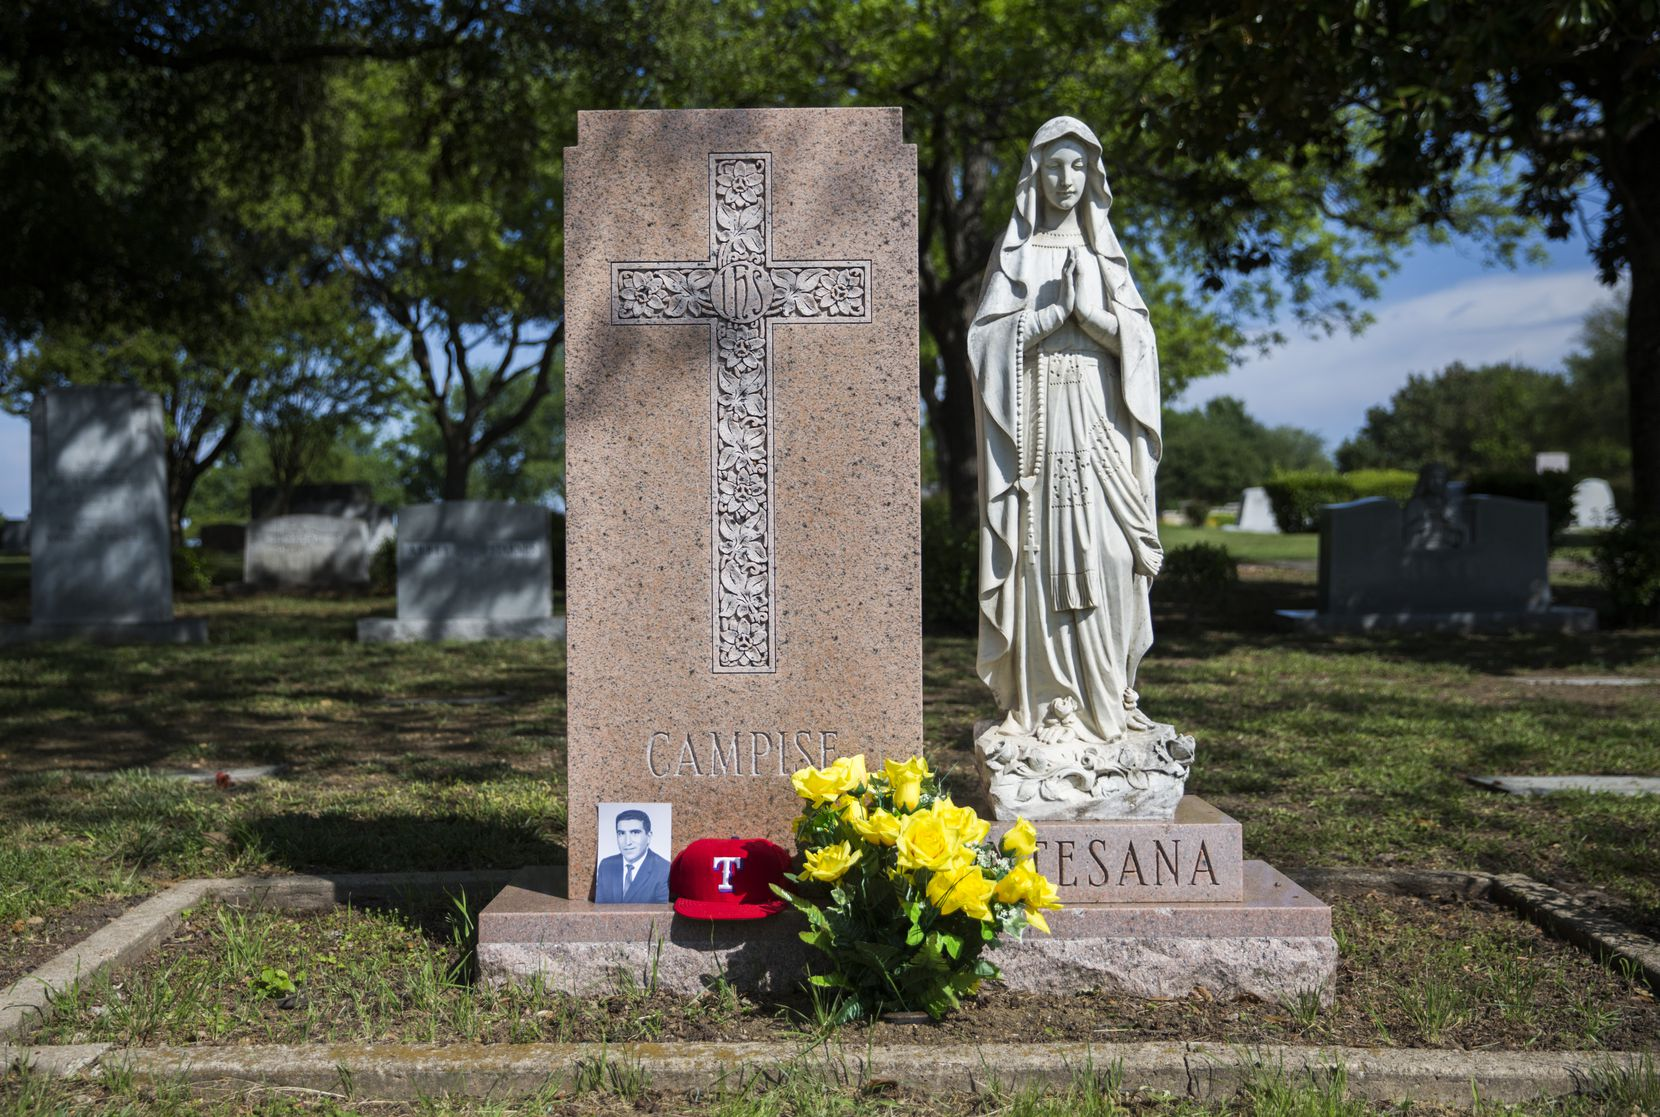 A portrait of Frank Campise and his cherished red Texas Rangers baseball cap rested near his grave at Calvary Hill Cemetery in Dallas on April 18. His wife, Lucy, and daughter, Mary Frances, brought the portrait and ballcap to honor him as photos were taken for this story.